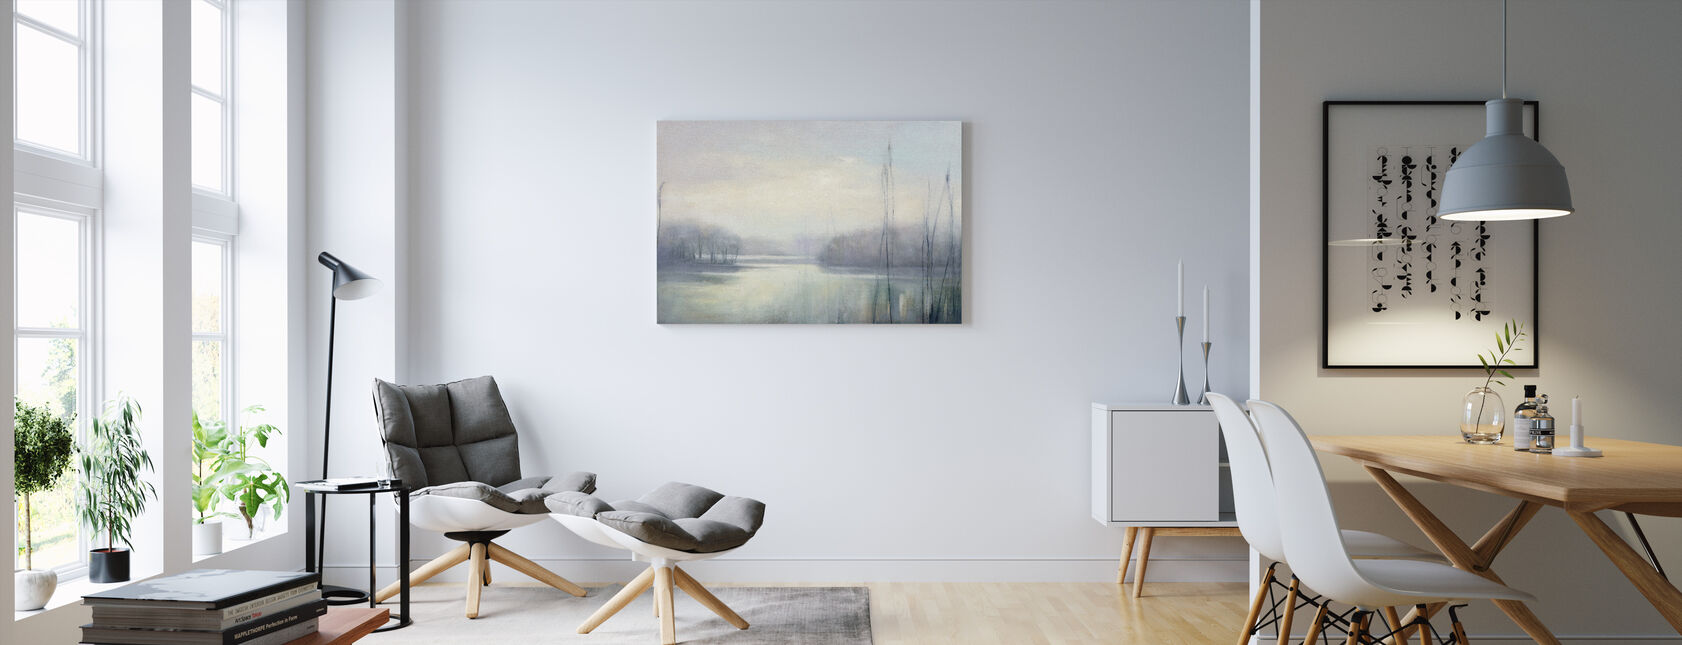 Misty Memories - Canvas print - Living Room